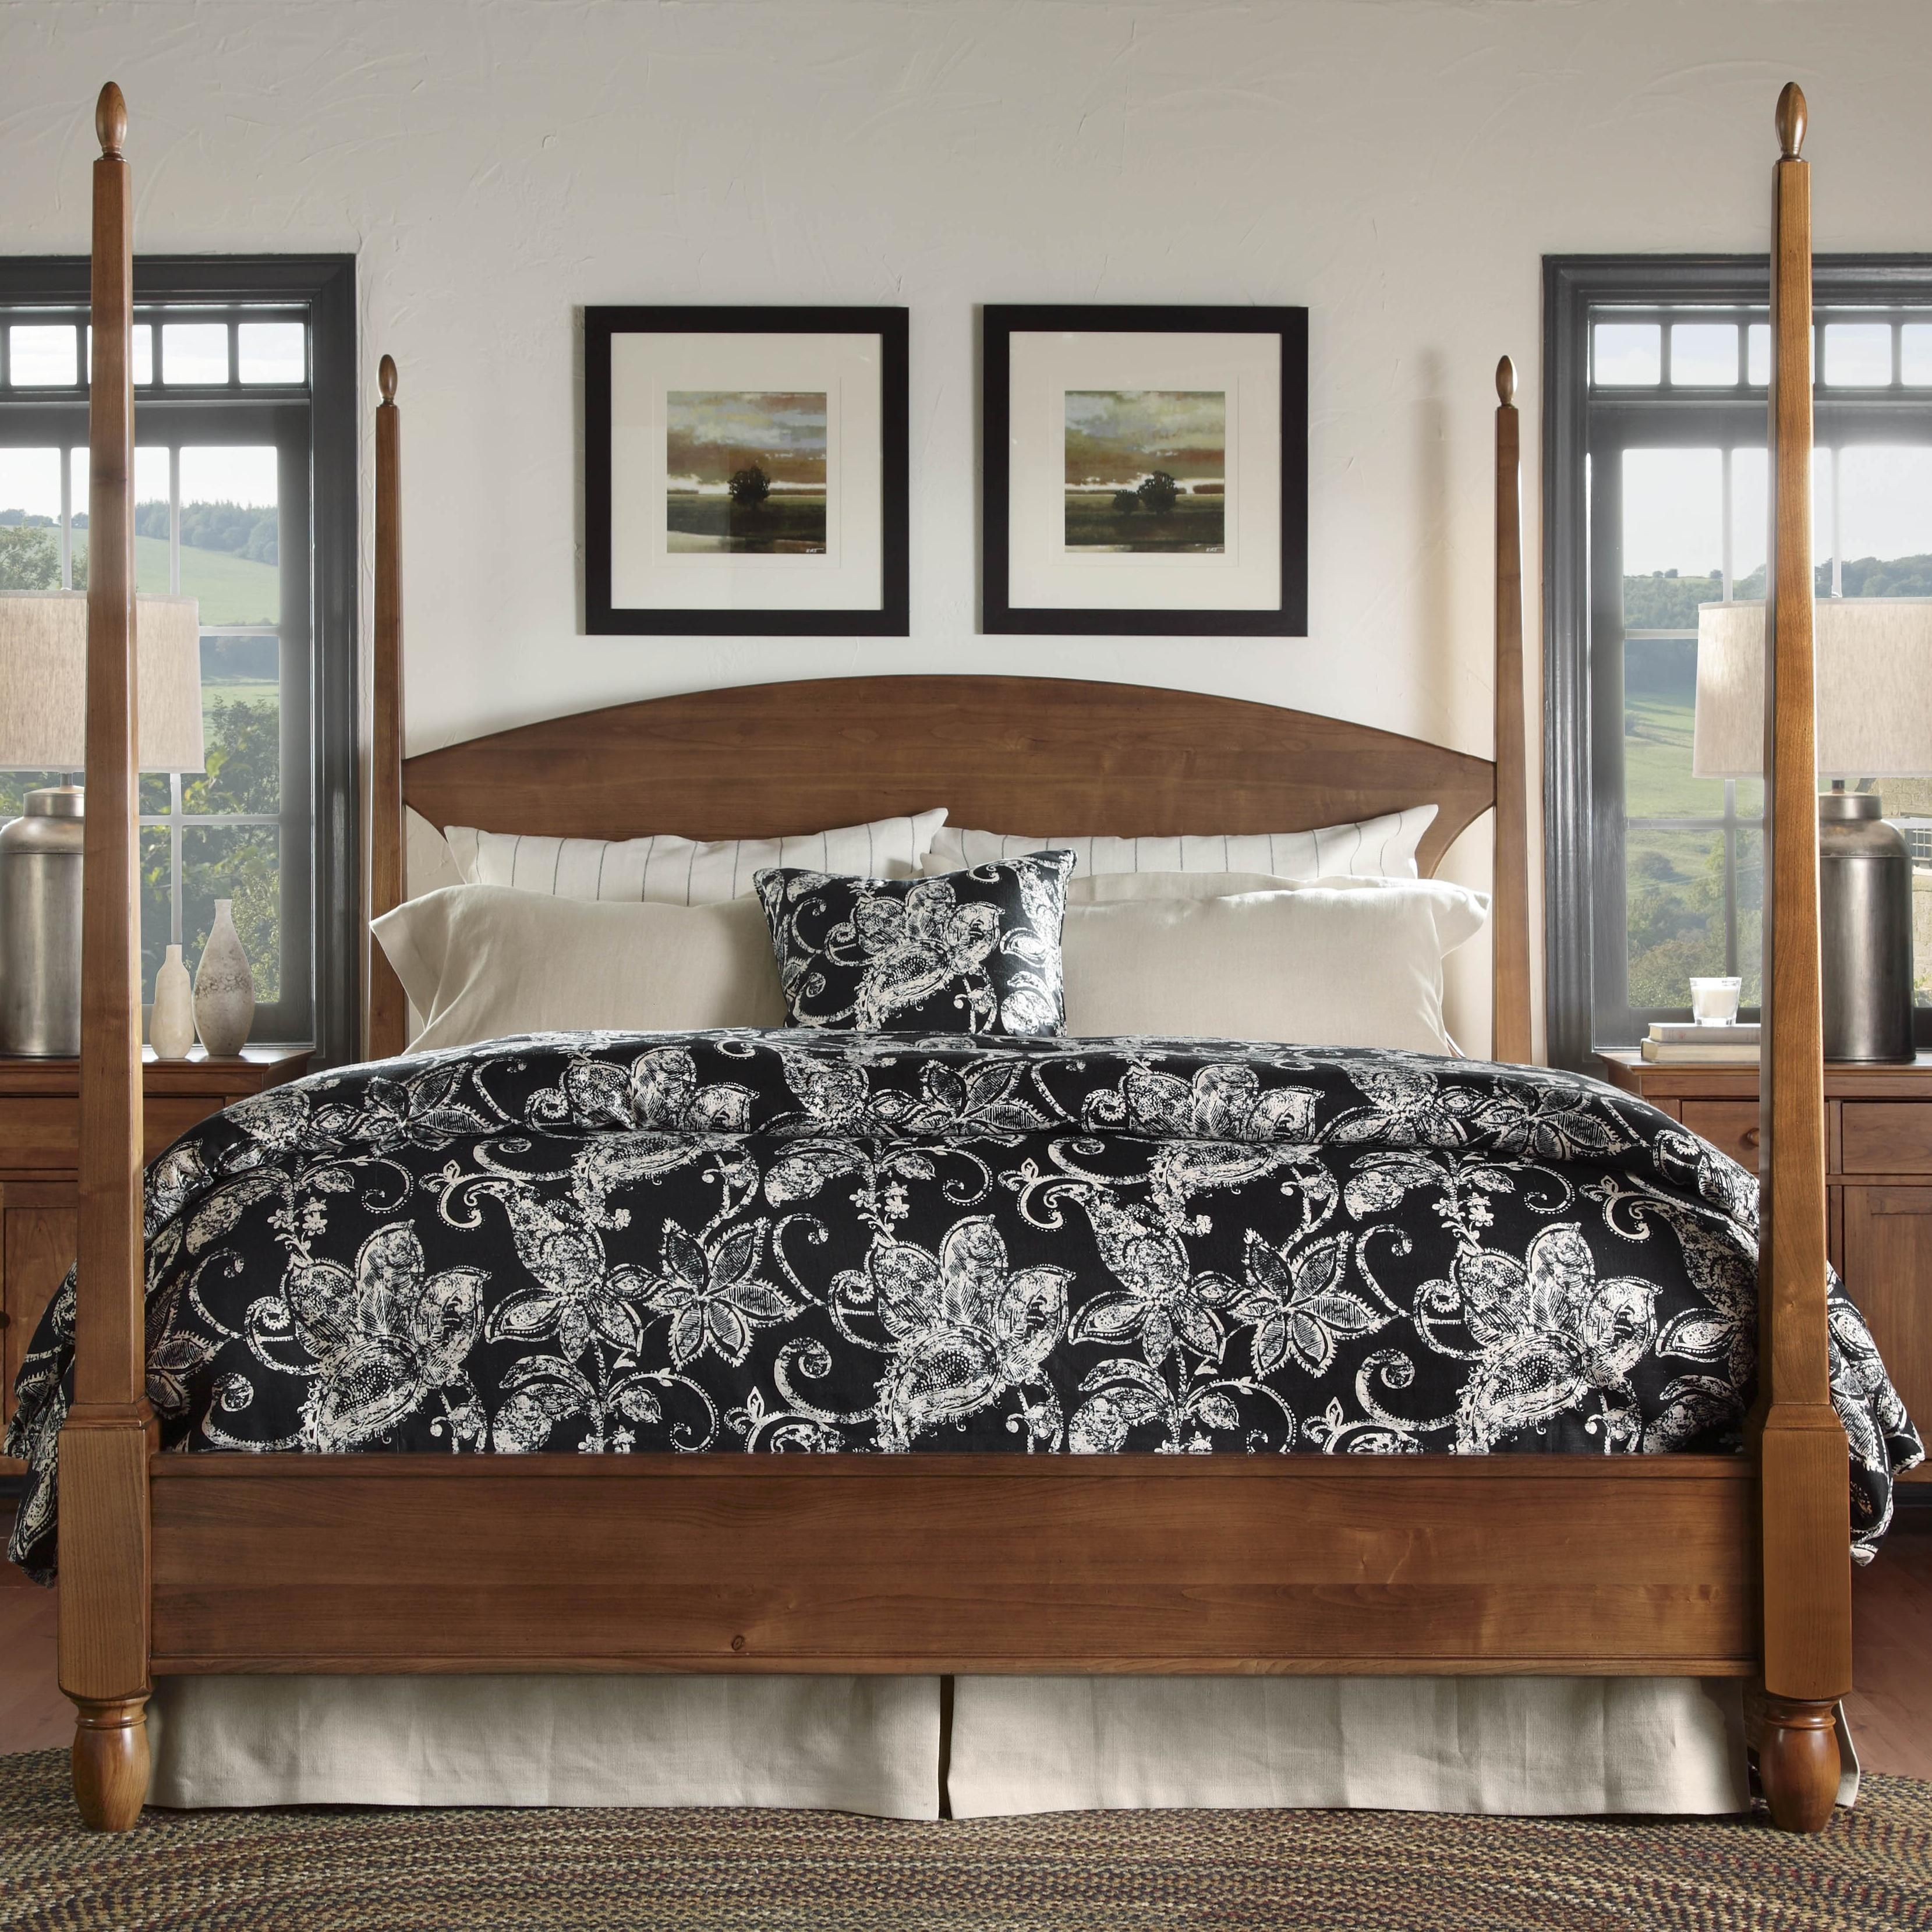 Kincaid Bedroom Furniture Meeting House King Pencil Post Bed By Kincaid Furniture Dream